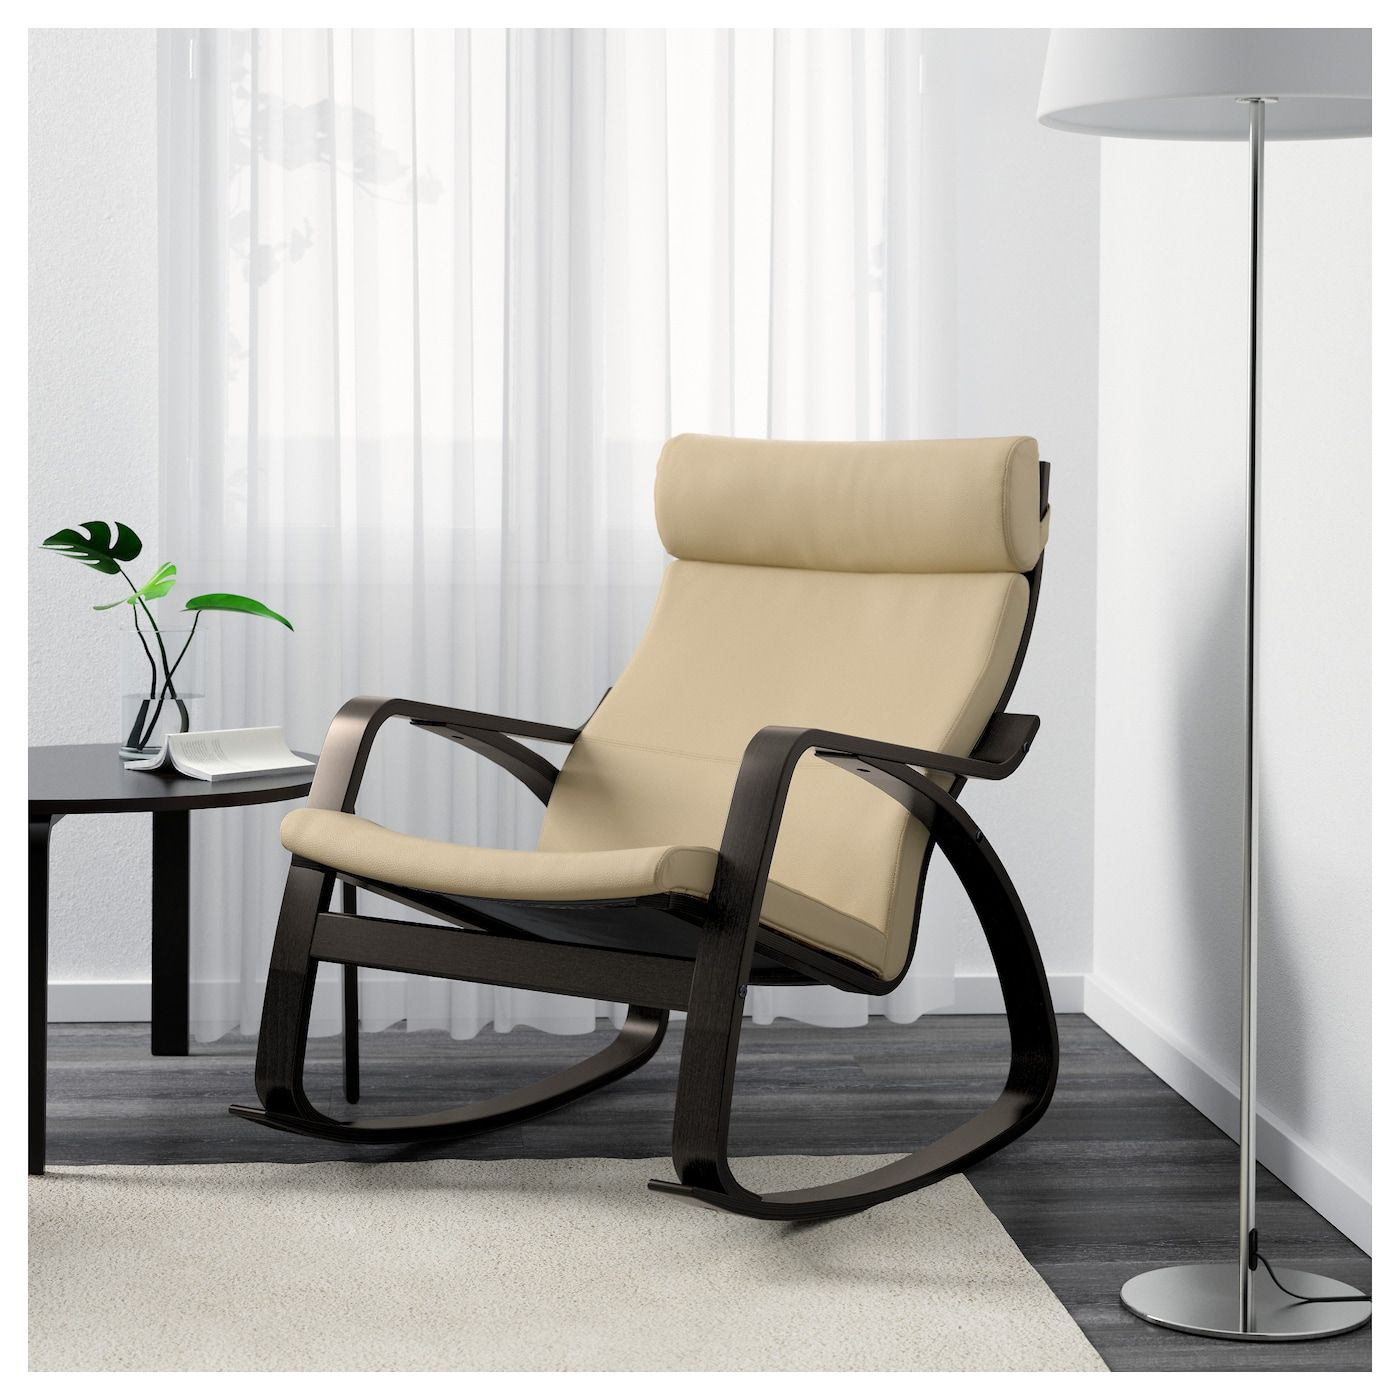 IKEA POÄNG Rocking chair blackbrown, Robust Glose off